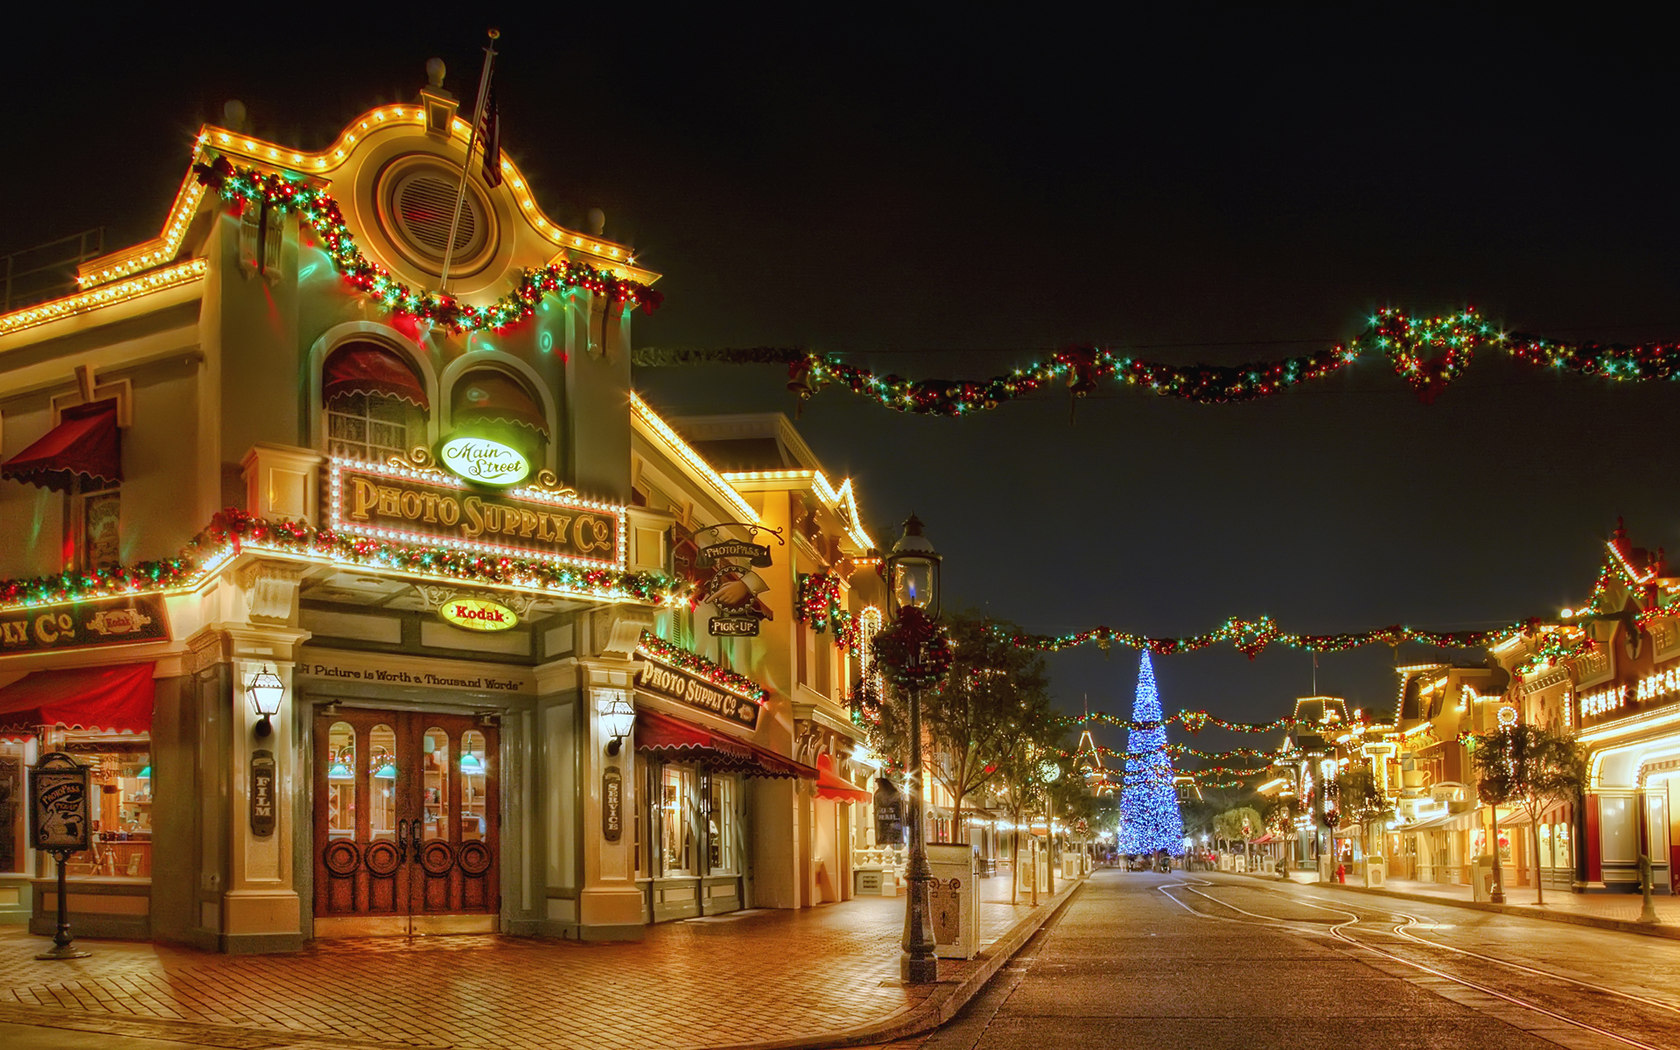 jnrm images disneyland main street at christmas time hd wallpaper and background photos